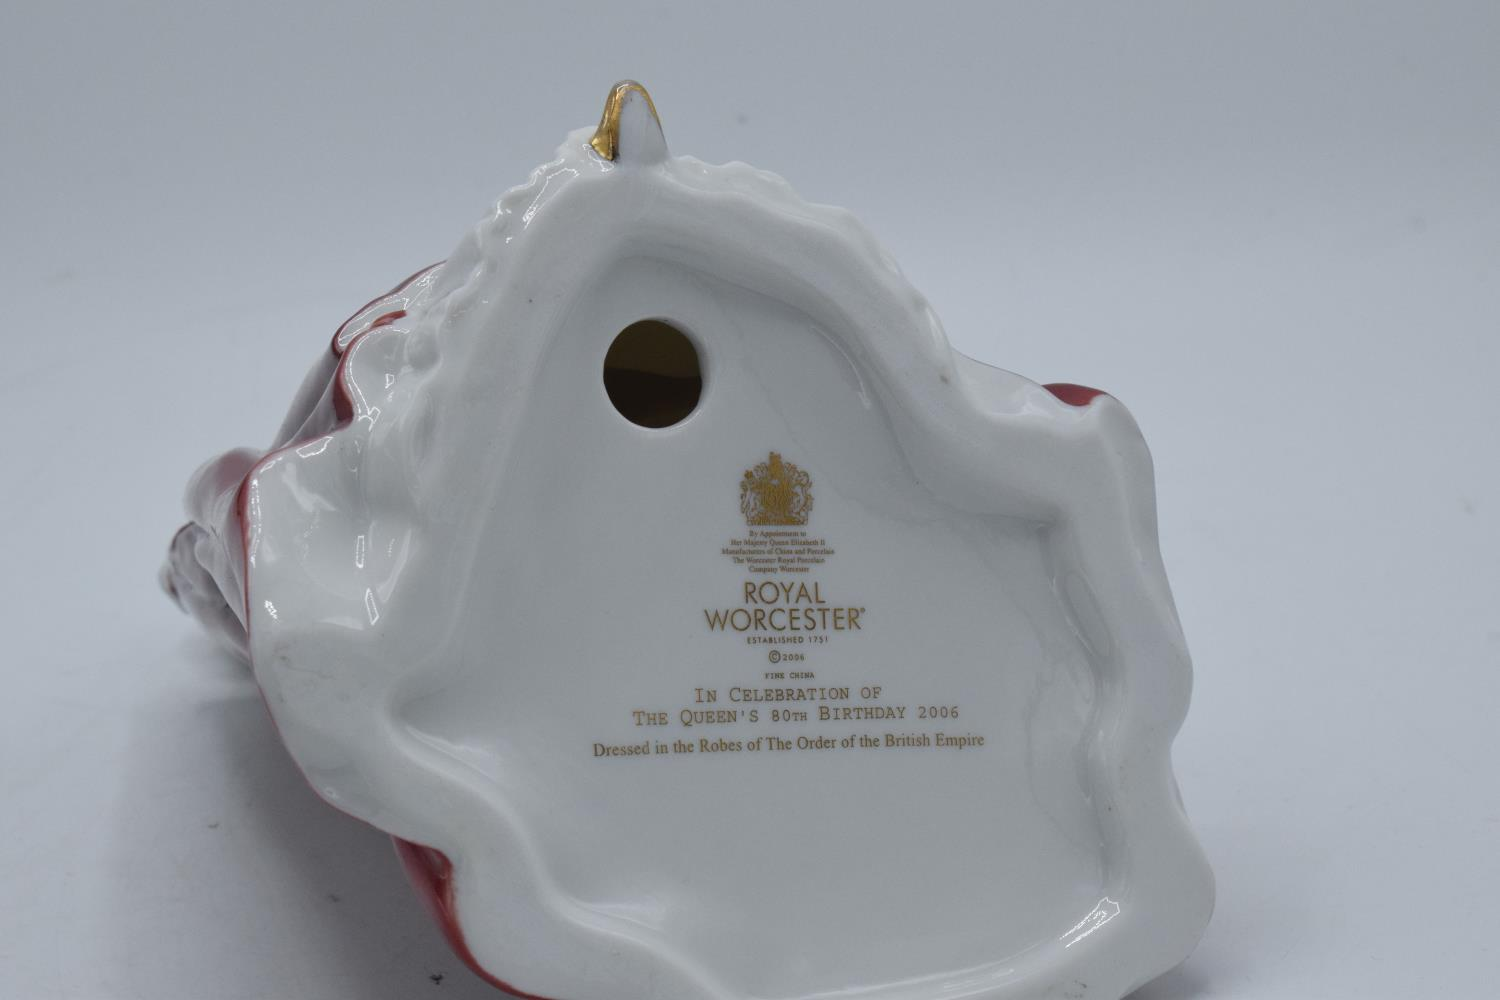 Royal Worcester figure Queens 80th Birthday. In good condition with no obvious damage or - Image 3 of 3